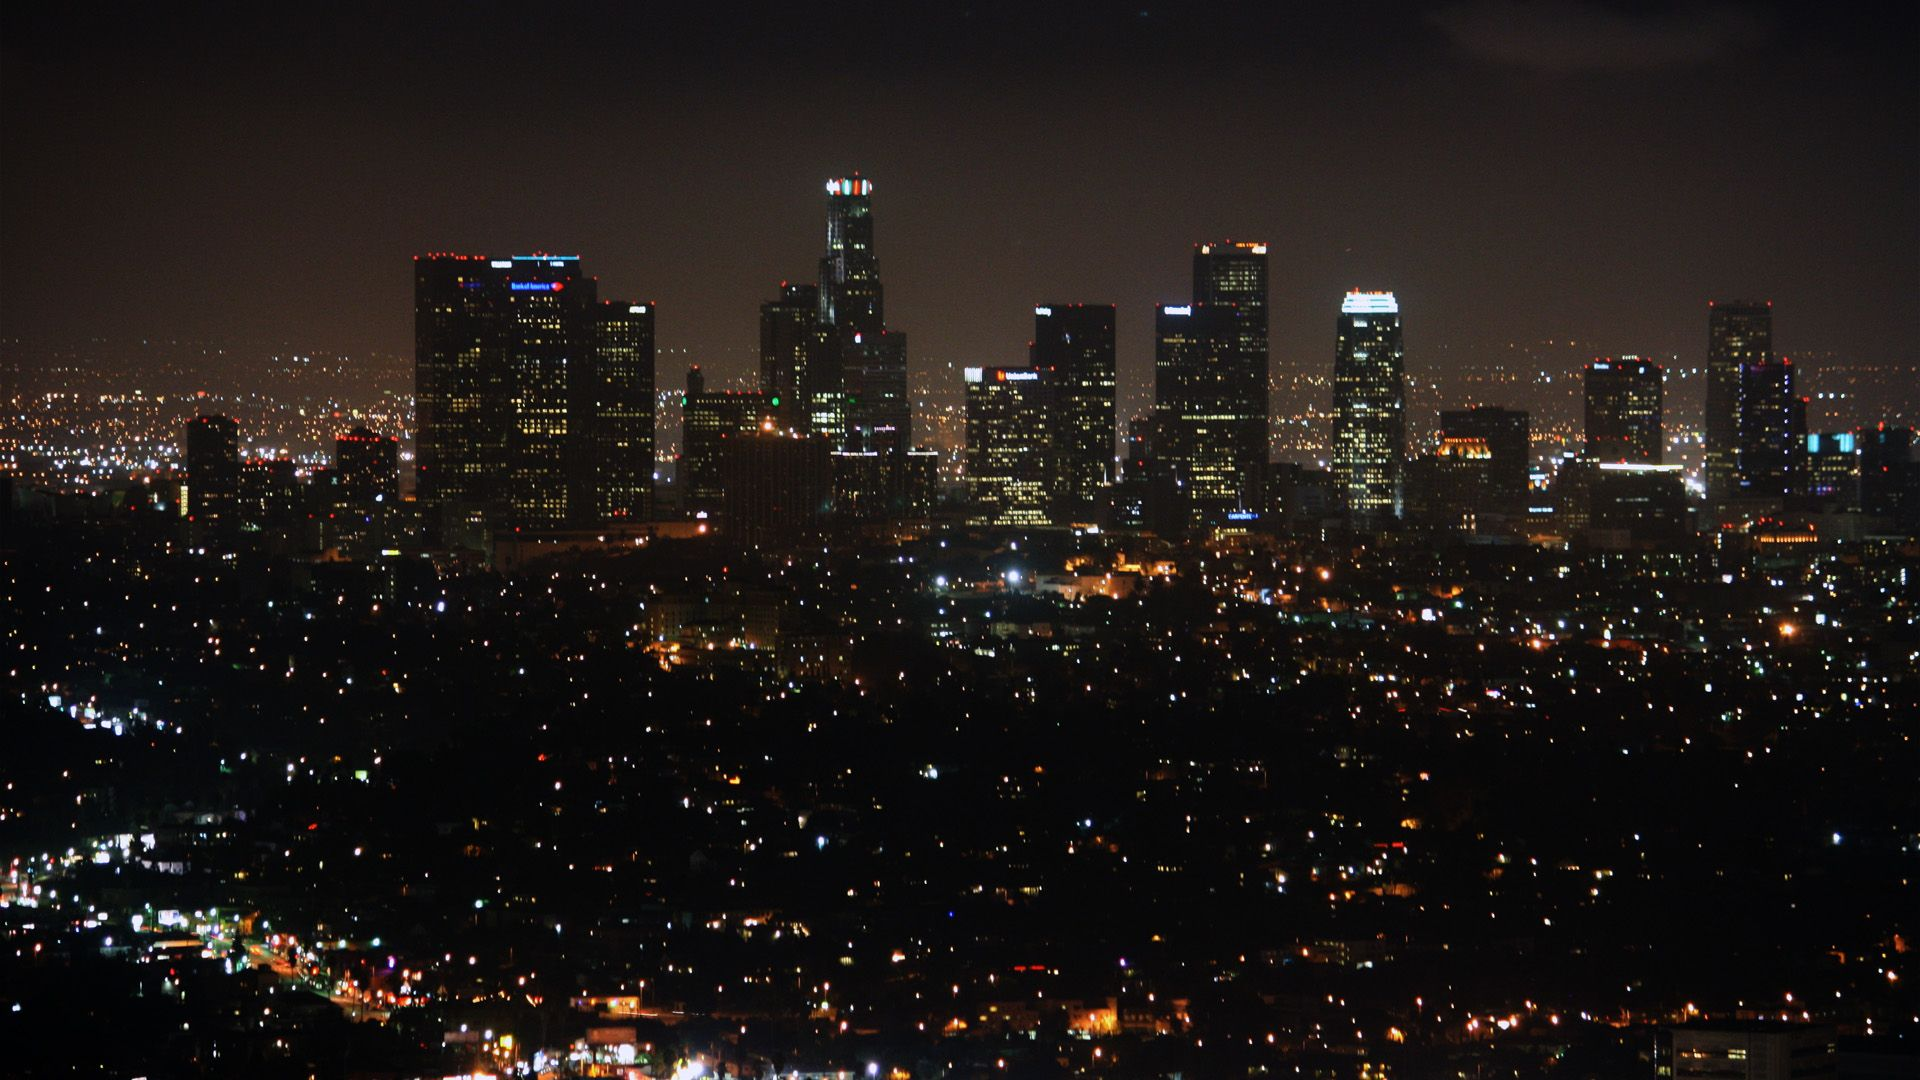 Lights Of La 1920x1080 Need Iphone 6s Plus Wallpaper Background For Iphone6splus Follo Los Angeles Wallpaper Los Angeles Skyline Los Angeles At Night